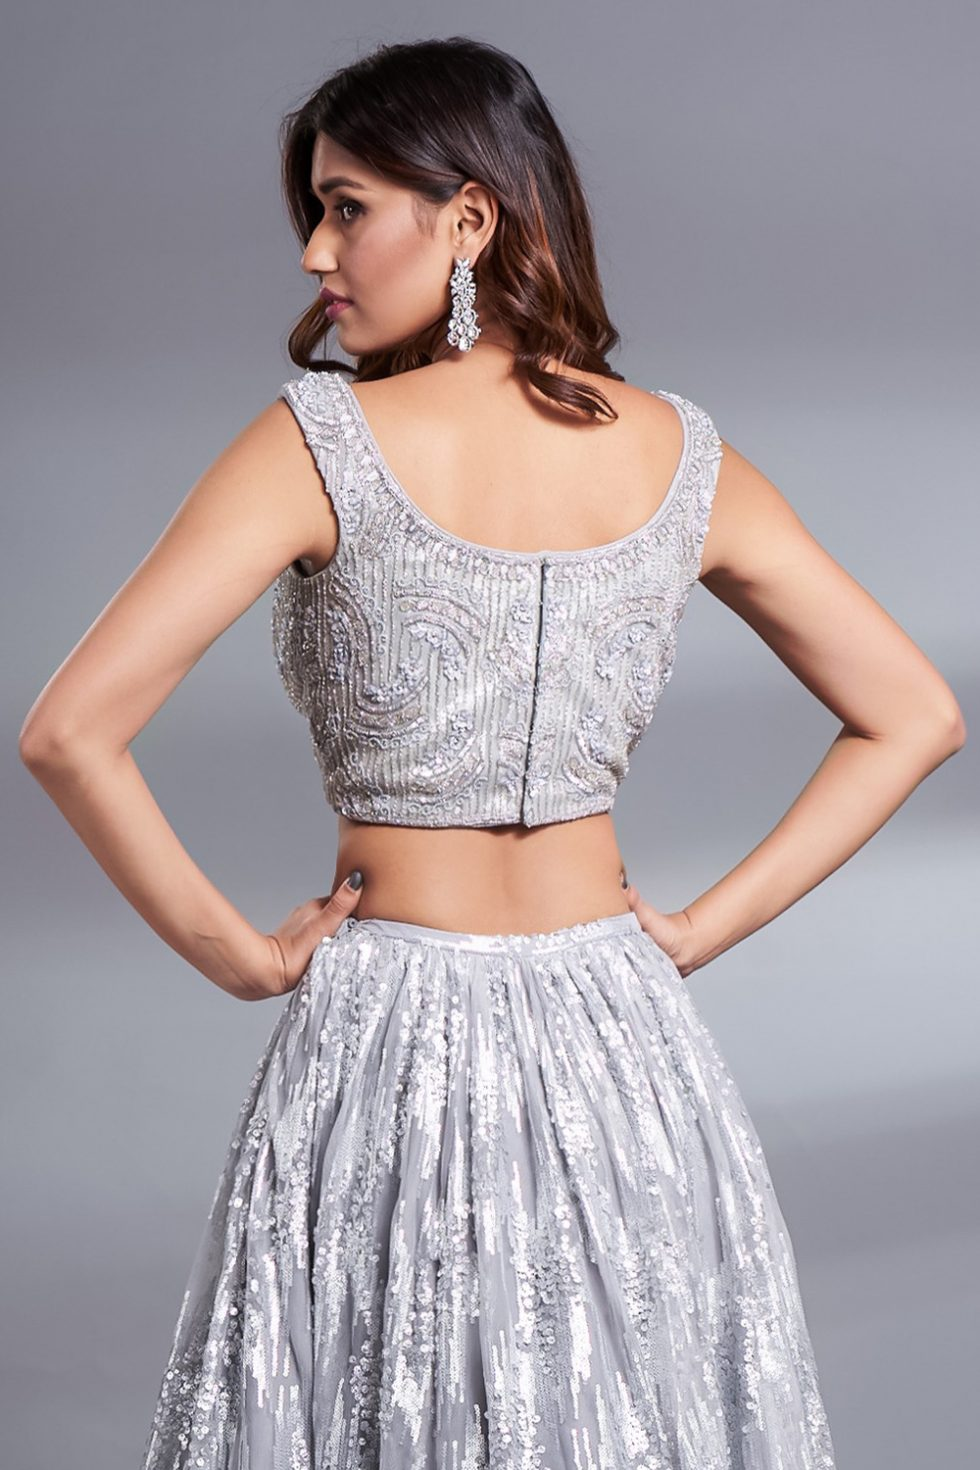 Silver grey hand embroidered blouse with silver embellishments.